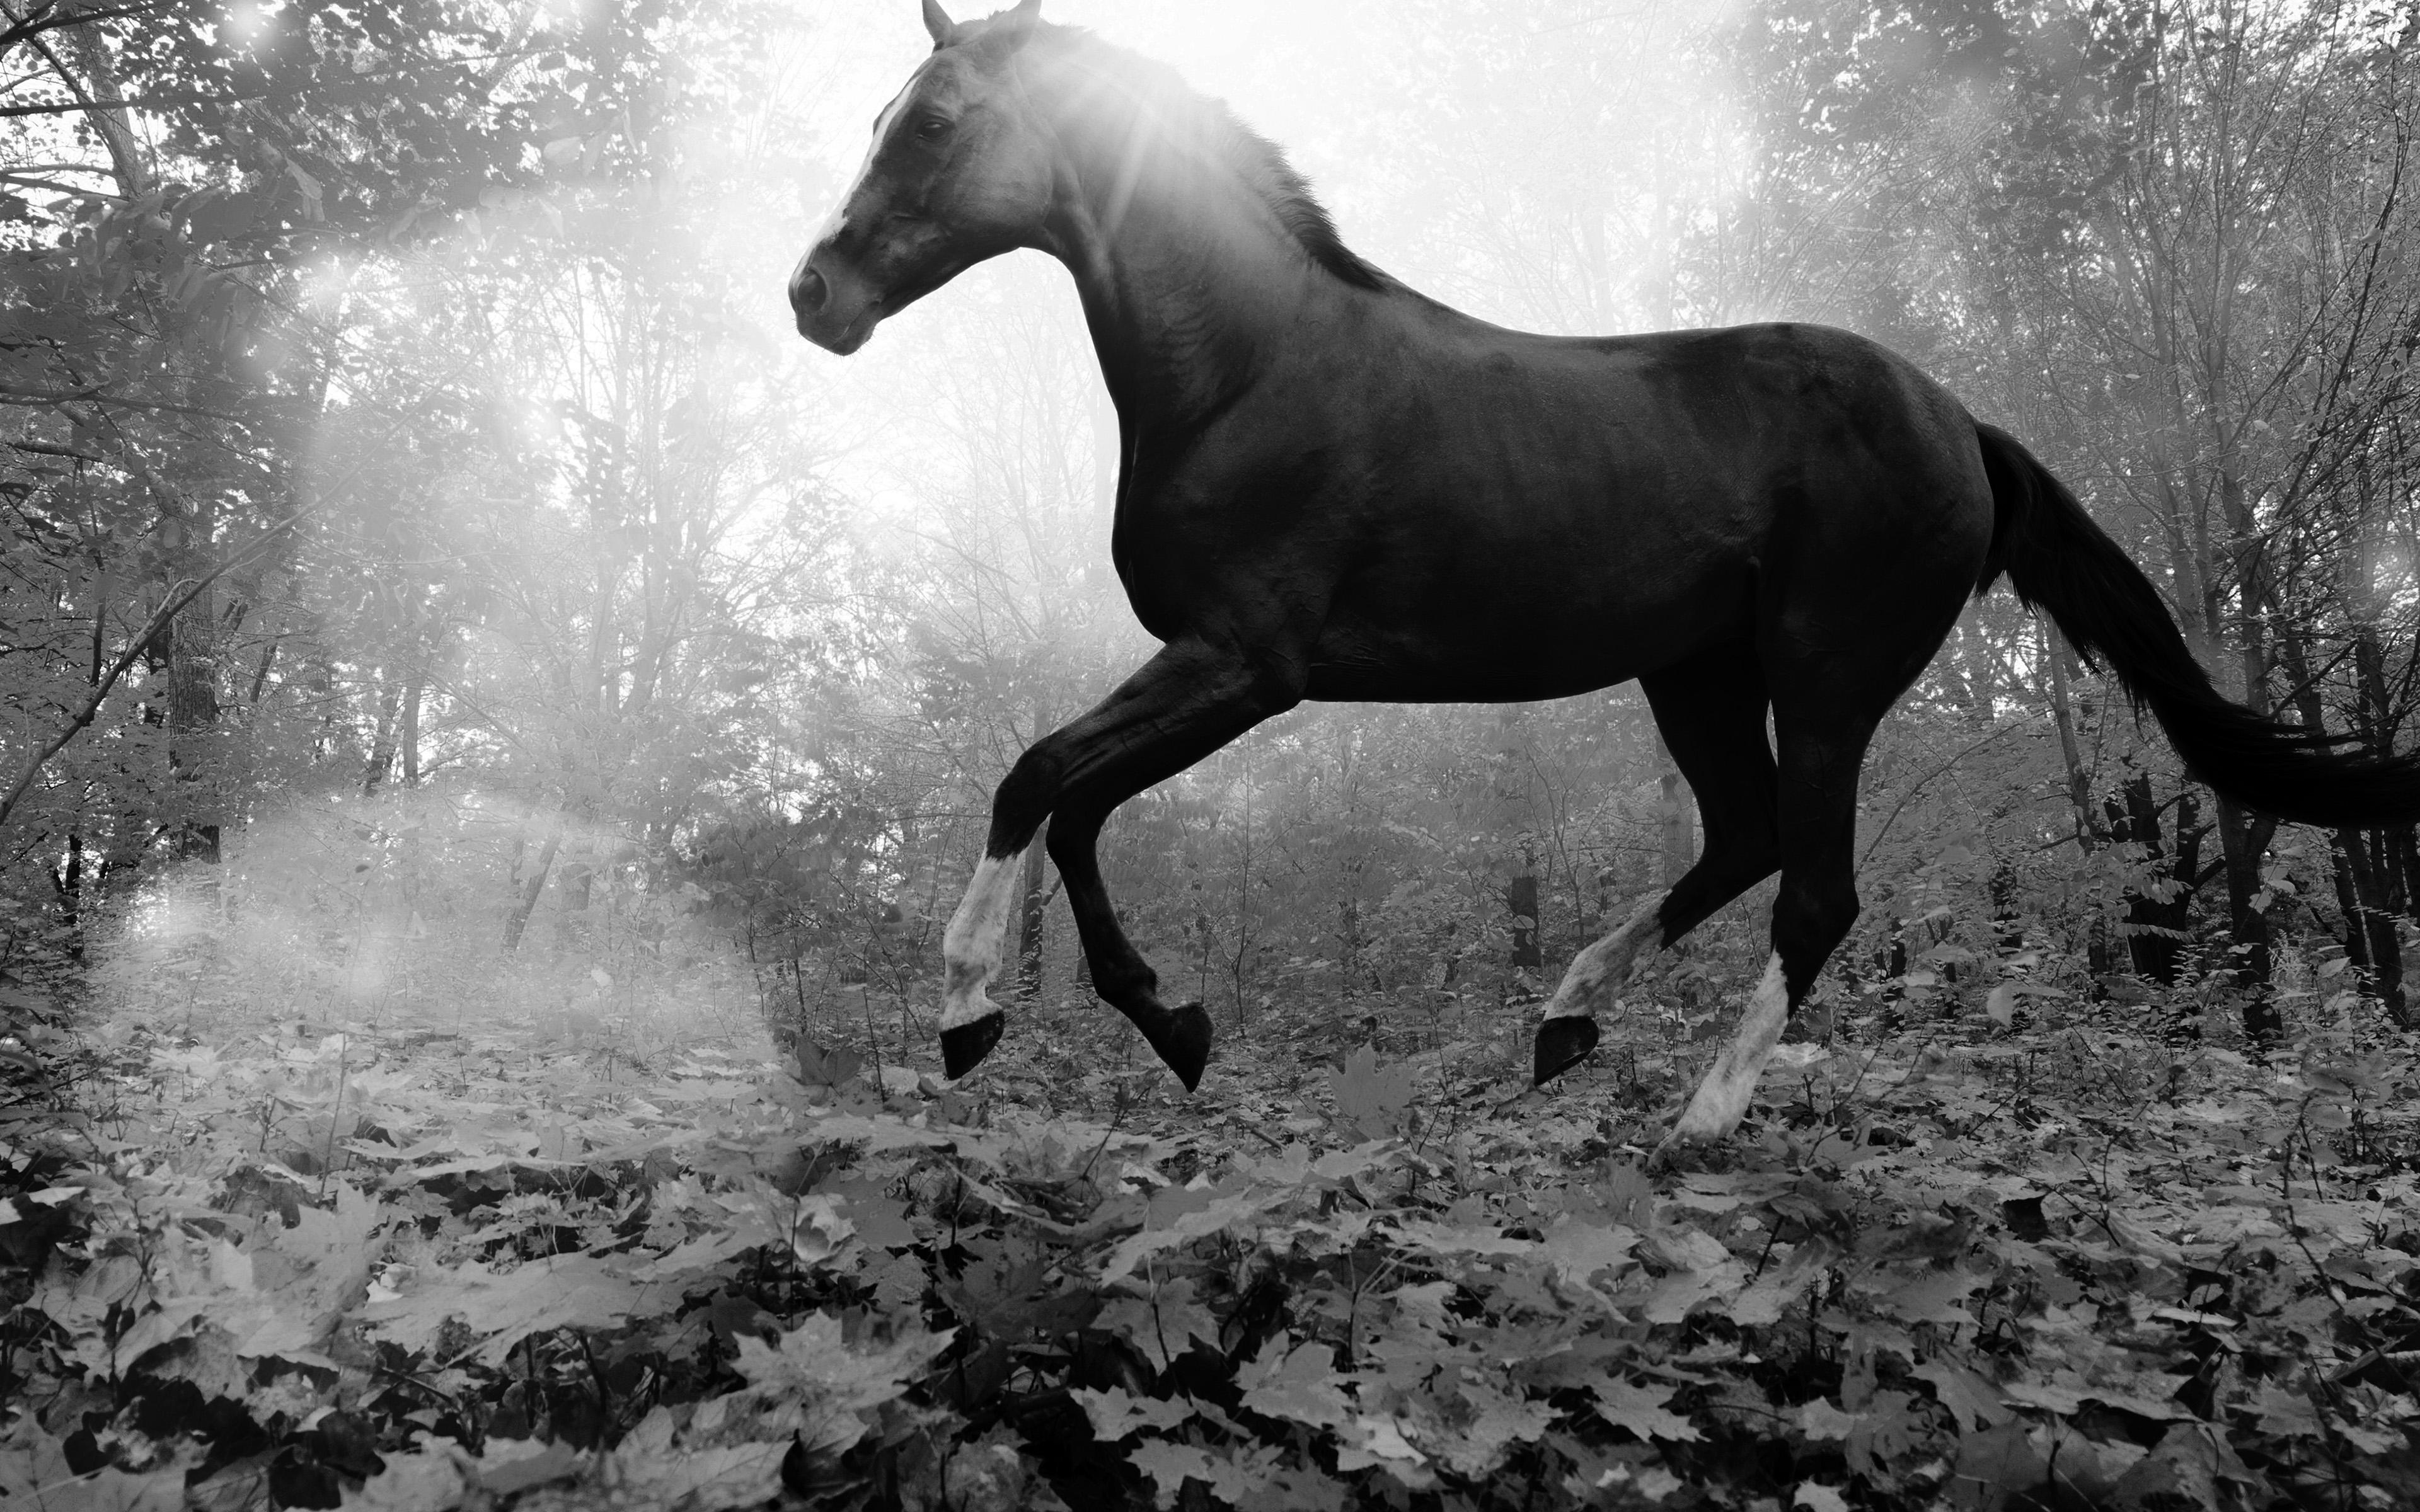 Wallpaper For Desktop Laptop Mt32 Horse Art Animal Fall Leaf Mountain Flare Dark Bw